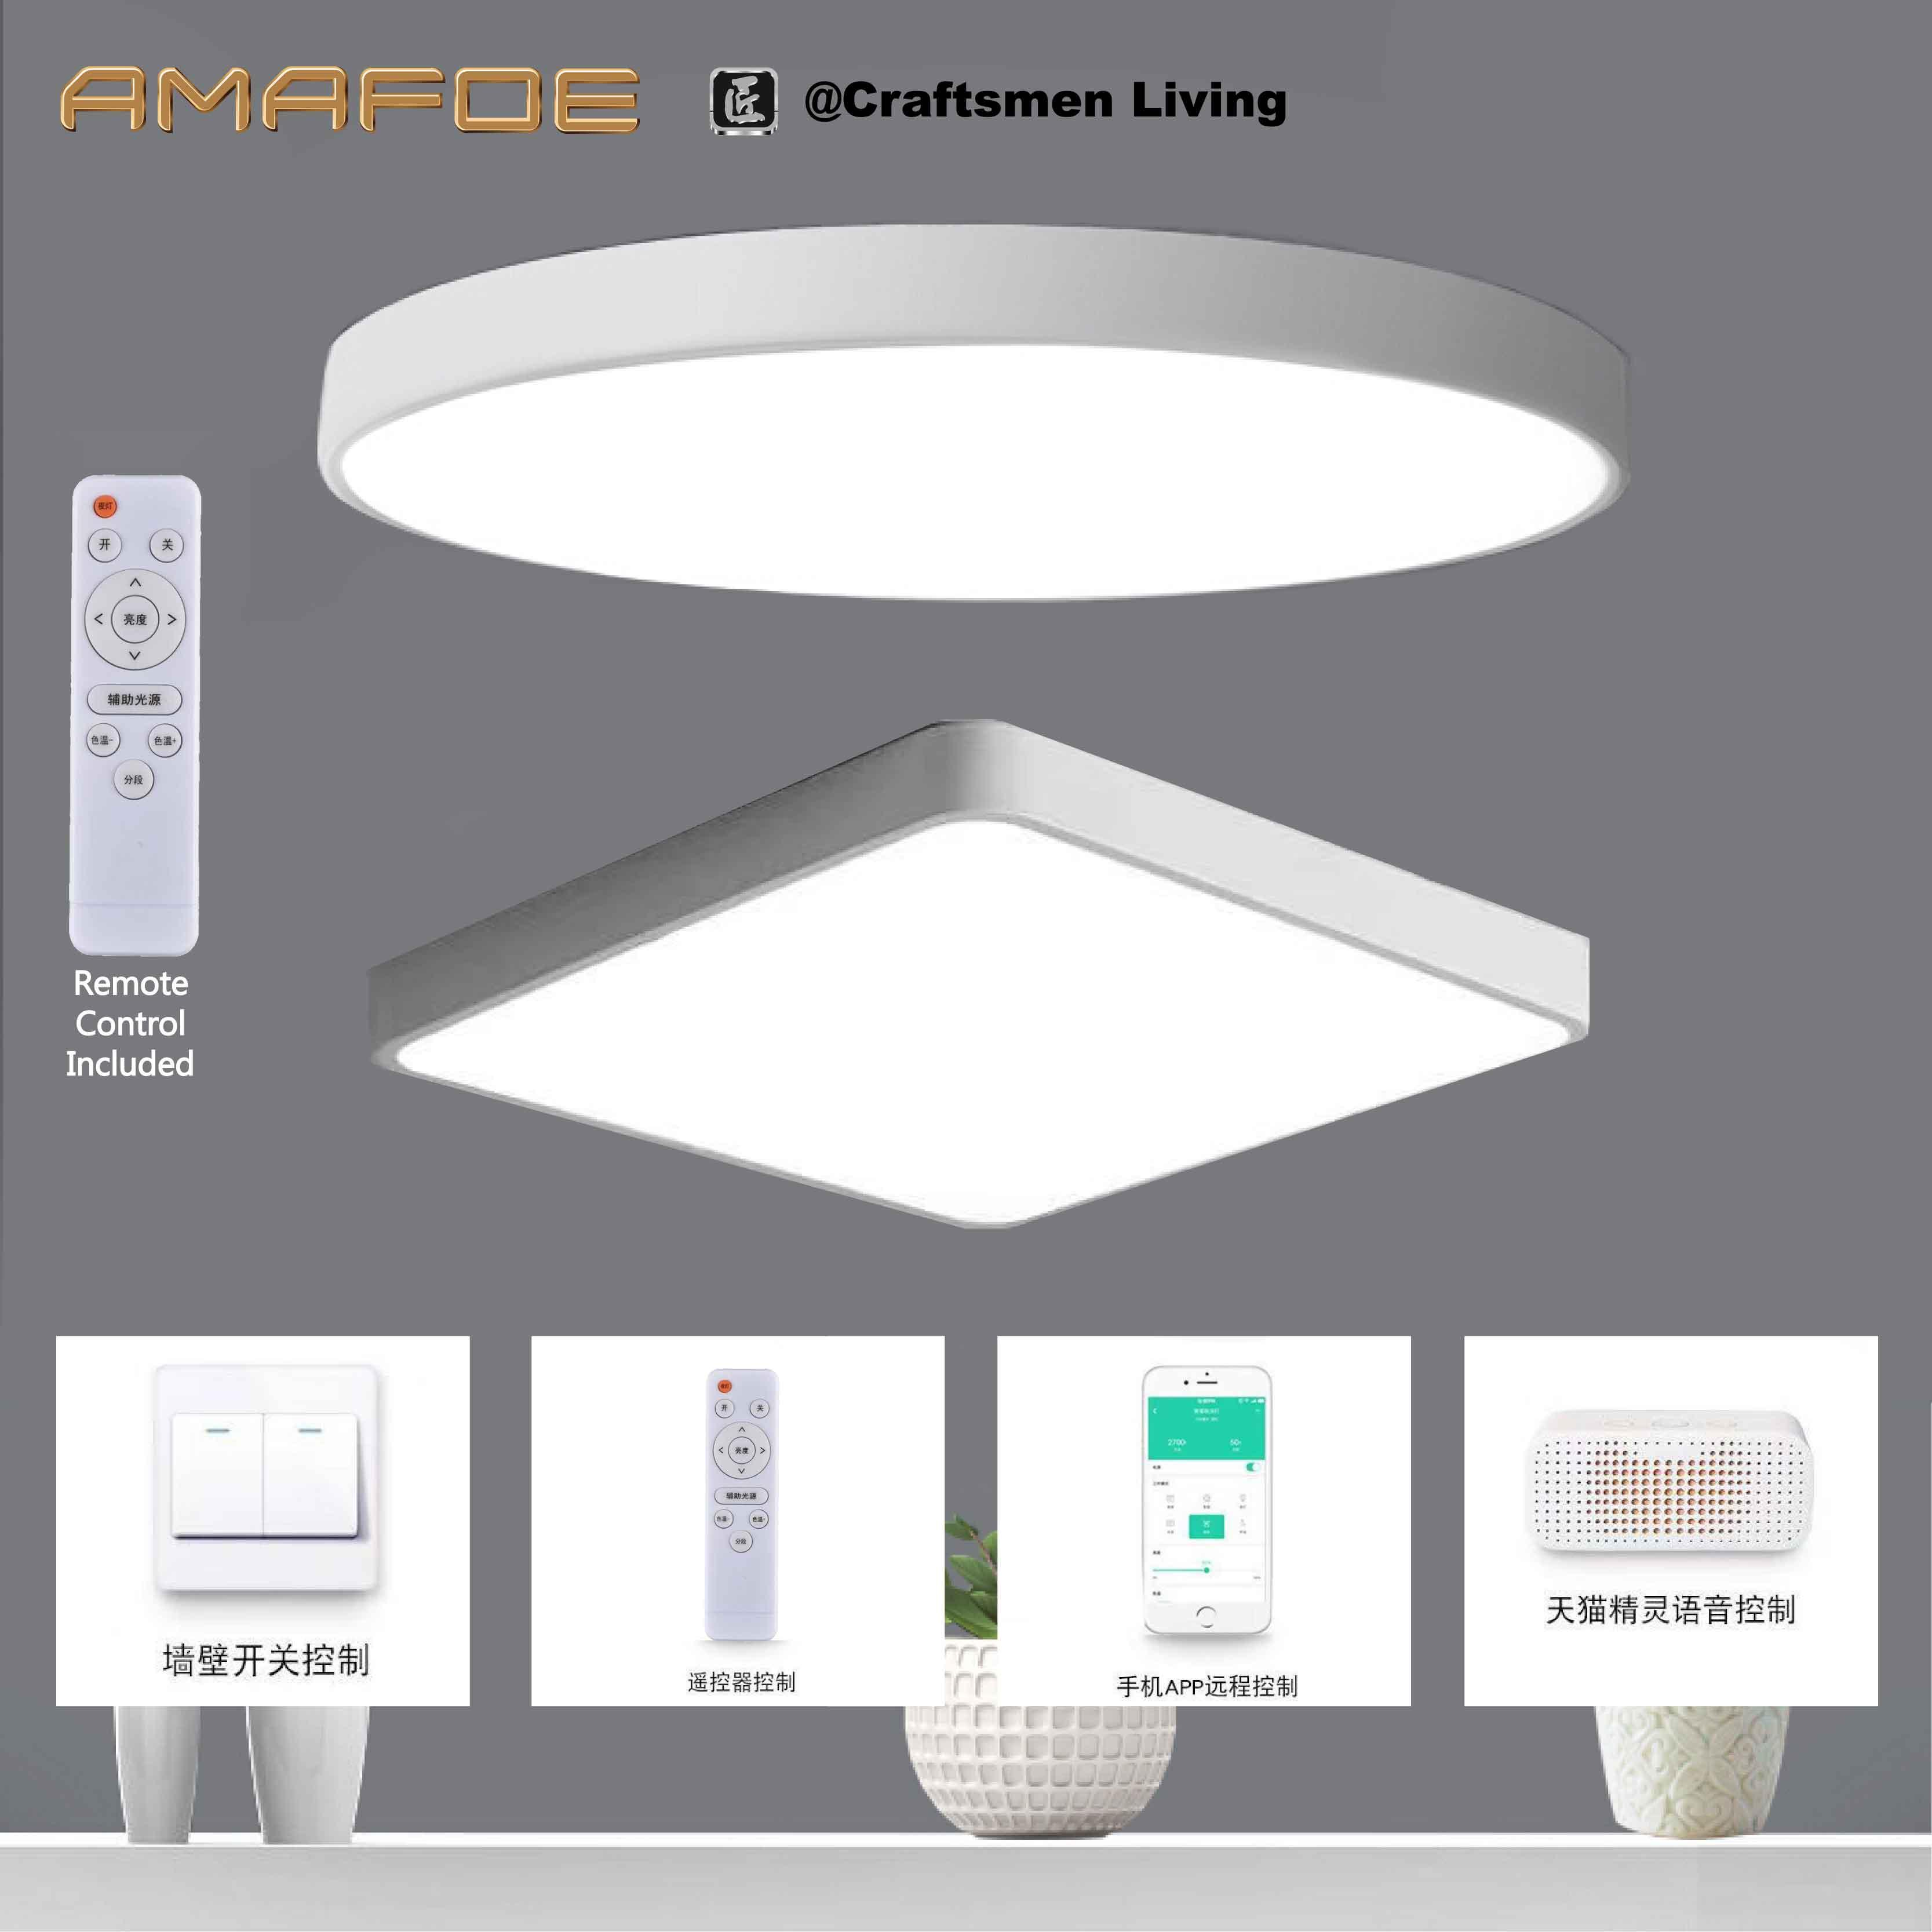 AMAFOE Smart LED Ceiling Light (Round White - 40cm*5cm - 36W - Remote Control Included - 3-Color Polarless Dimming - 4 Mode Control (Wall Switch, Remote, TMALL Genie Mobile Apps & Voice works with 2.4GHz WiFi TMALL Genie 天猫精灵 AI Smart Speakers)